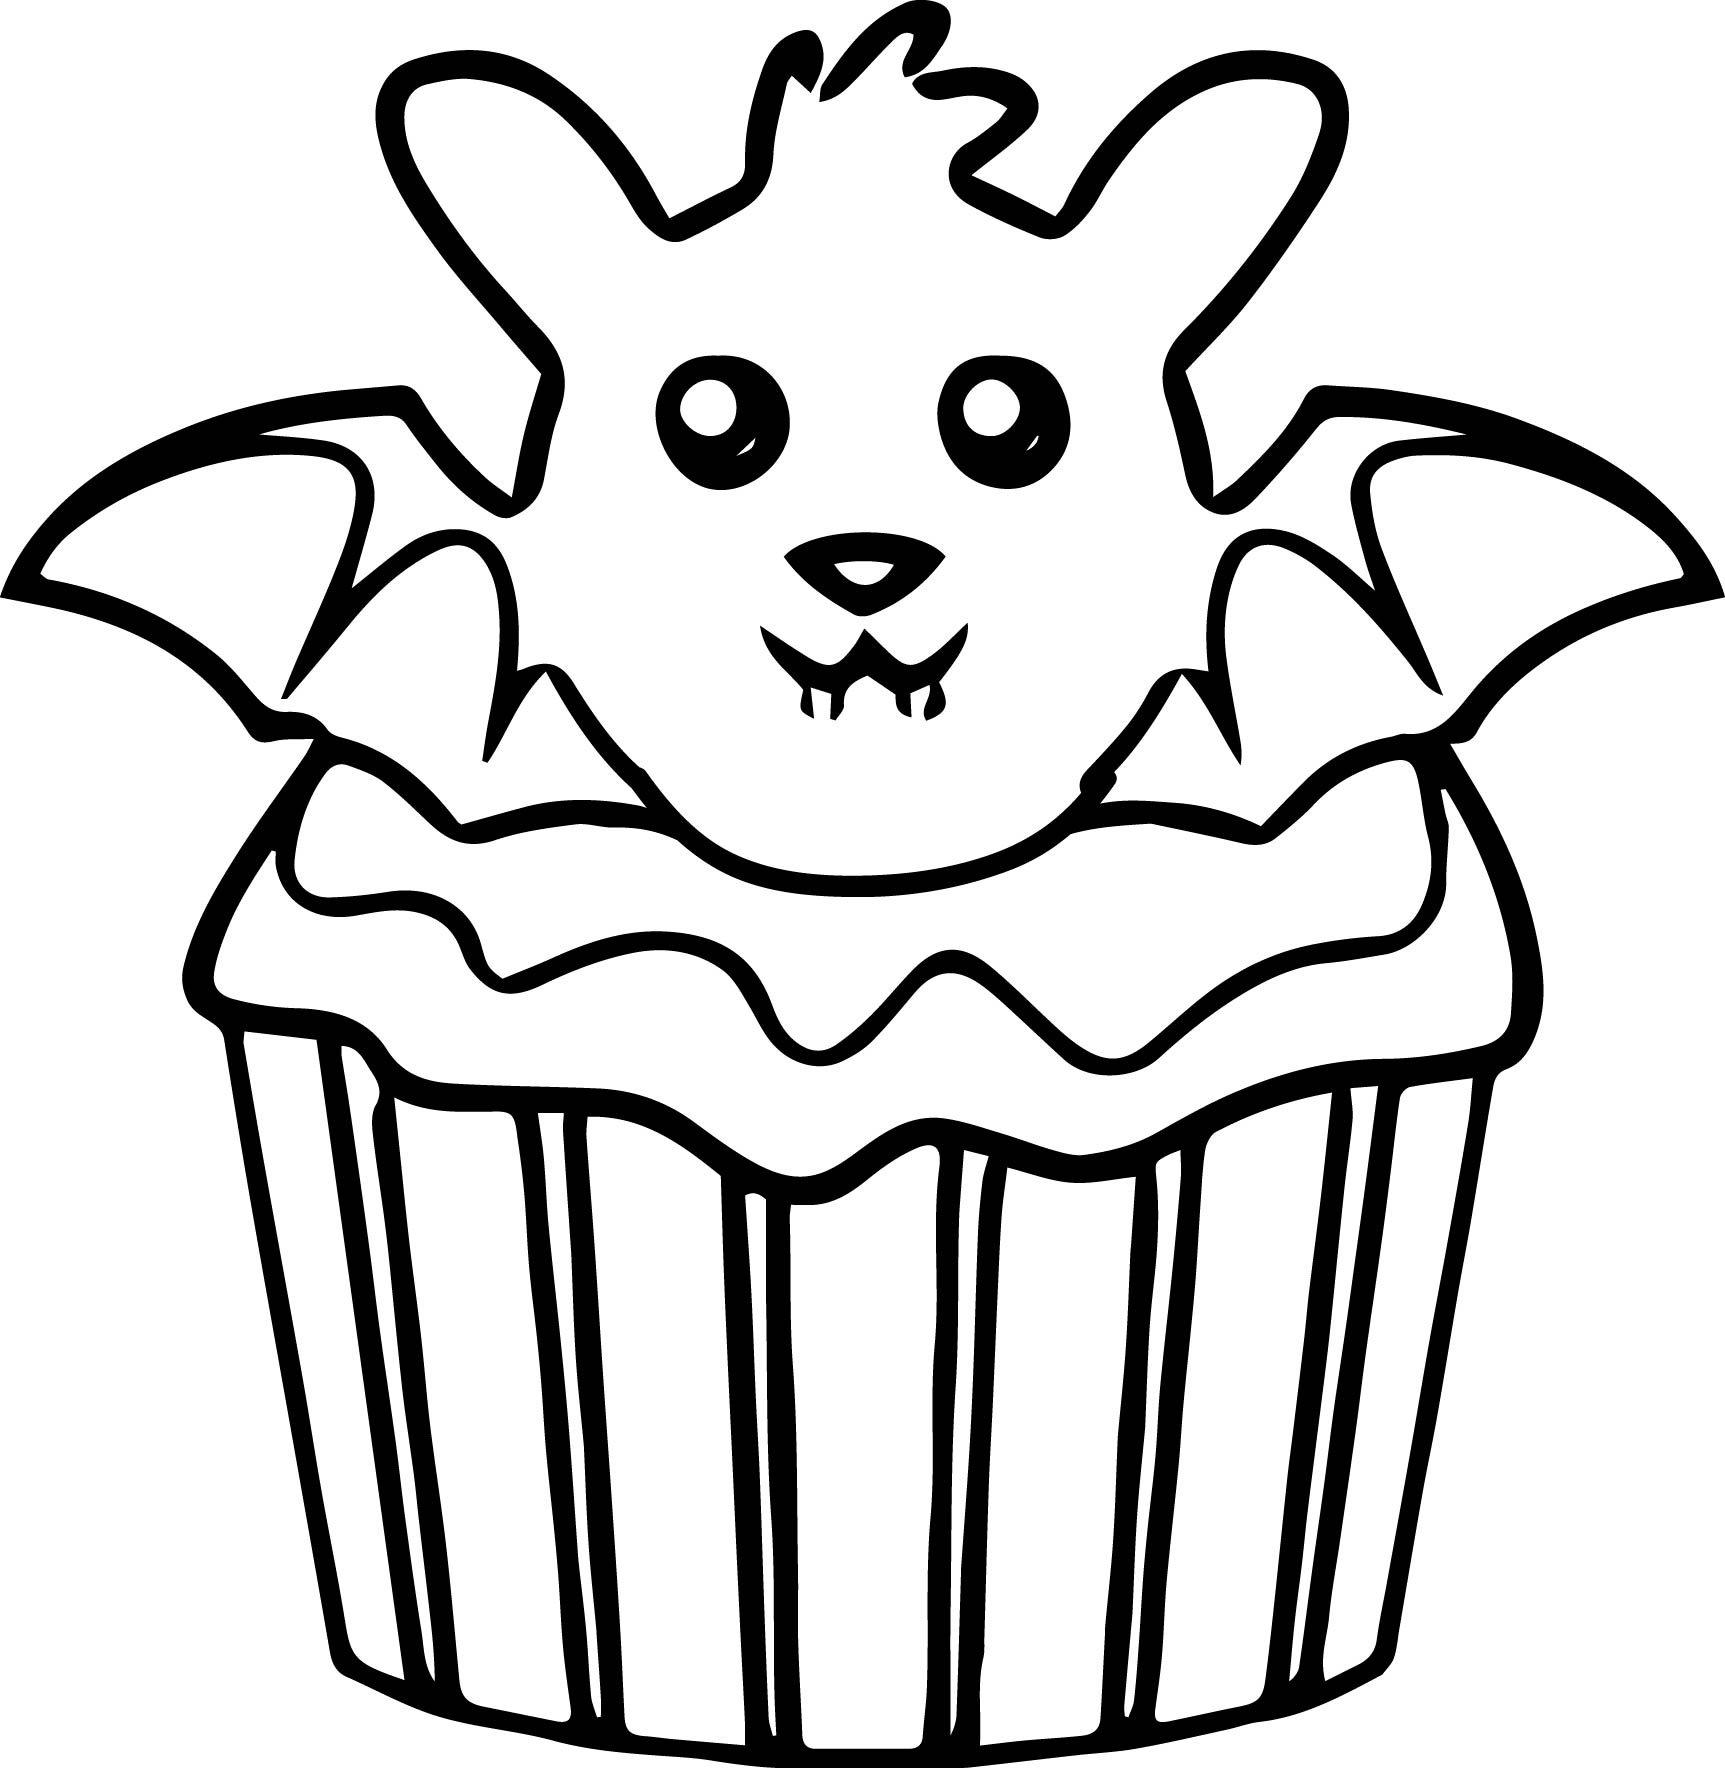 muffin pictures to color muffin coloring page coloring home to muffin color pictures